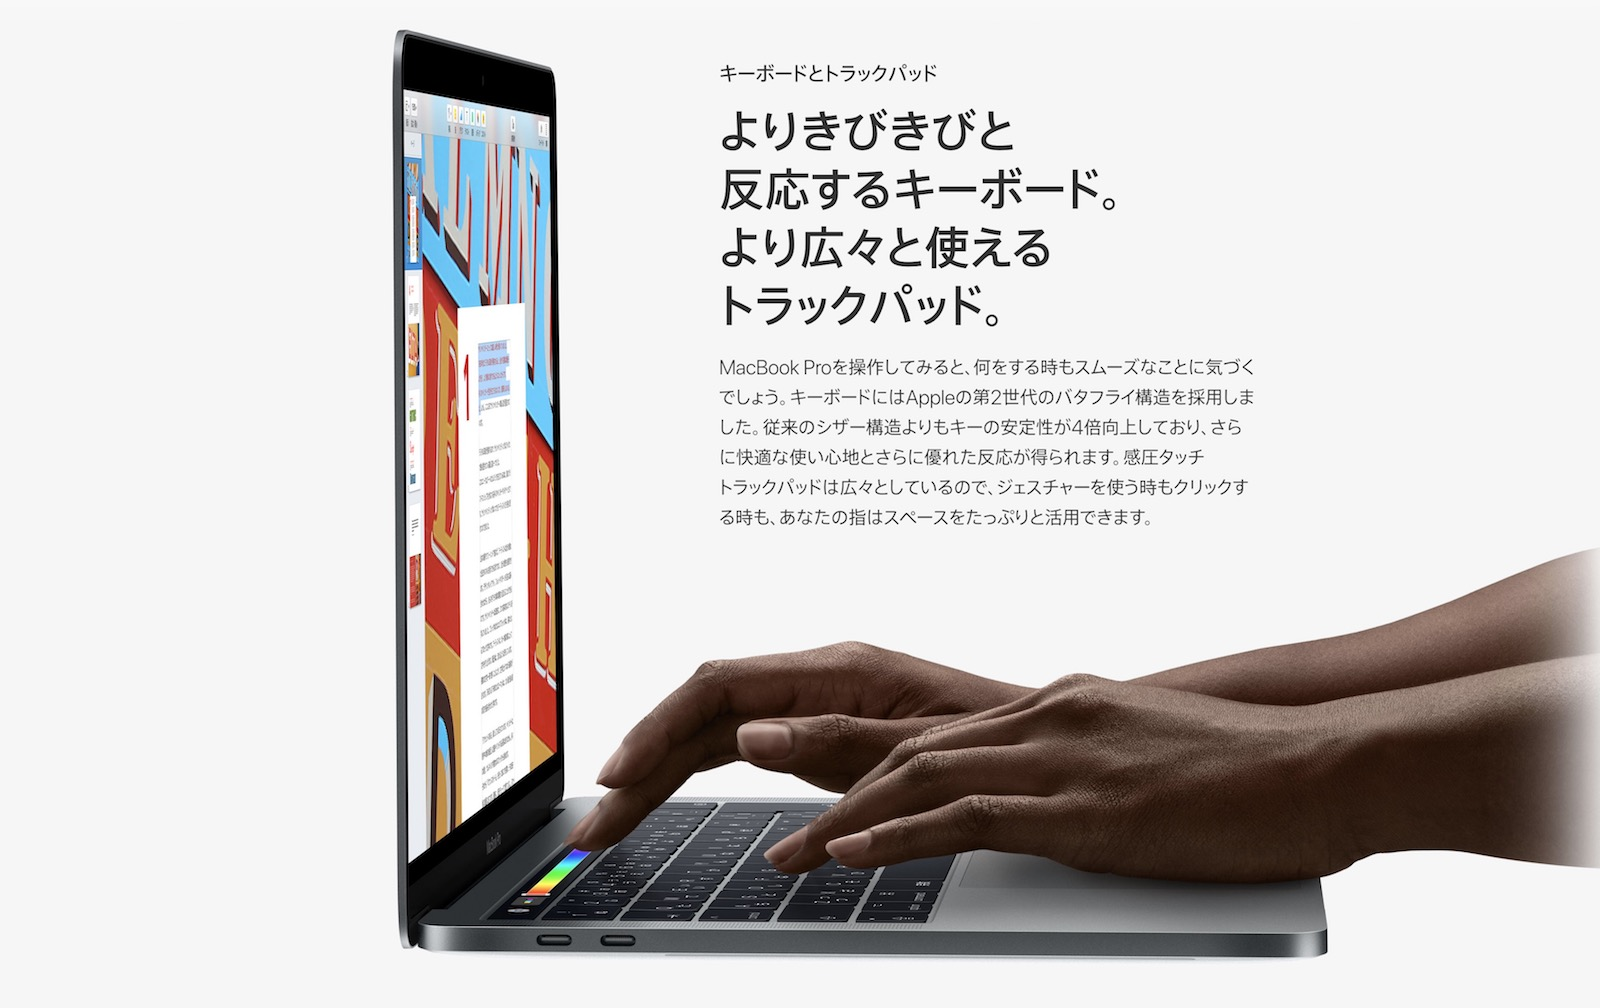 MacBook Pro Apple Official Description